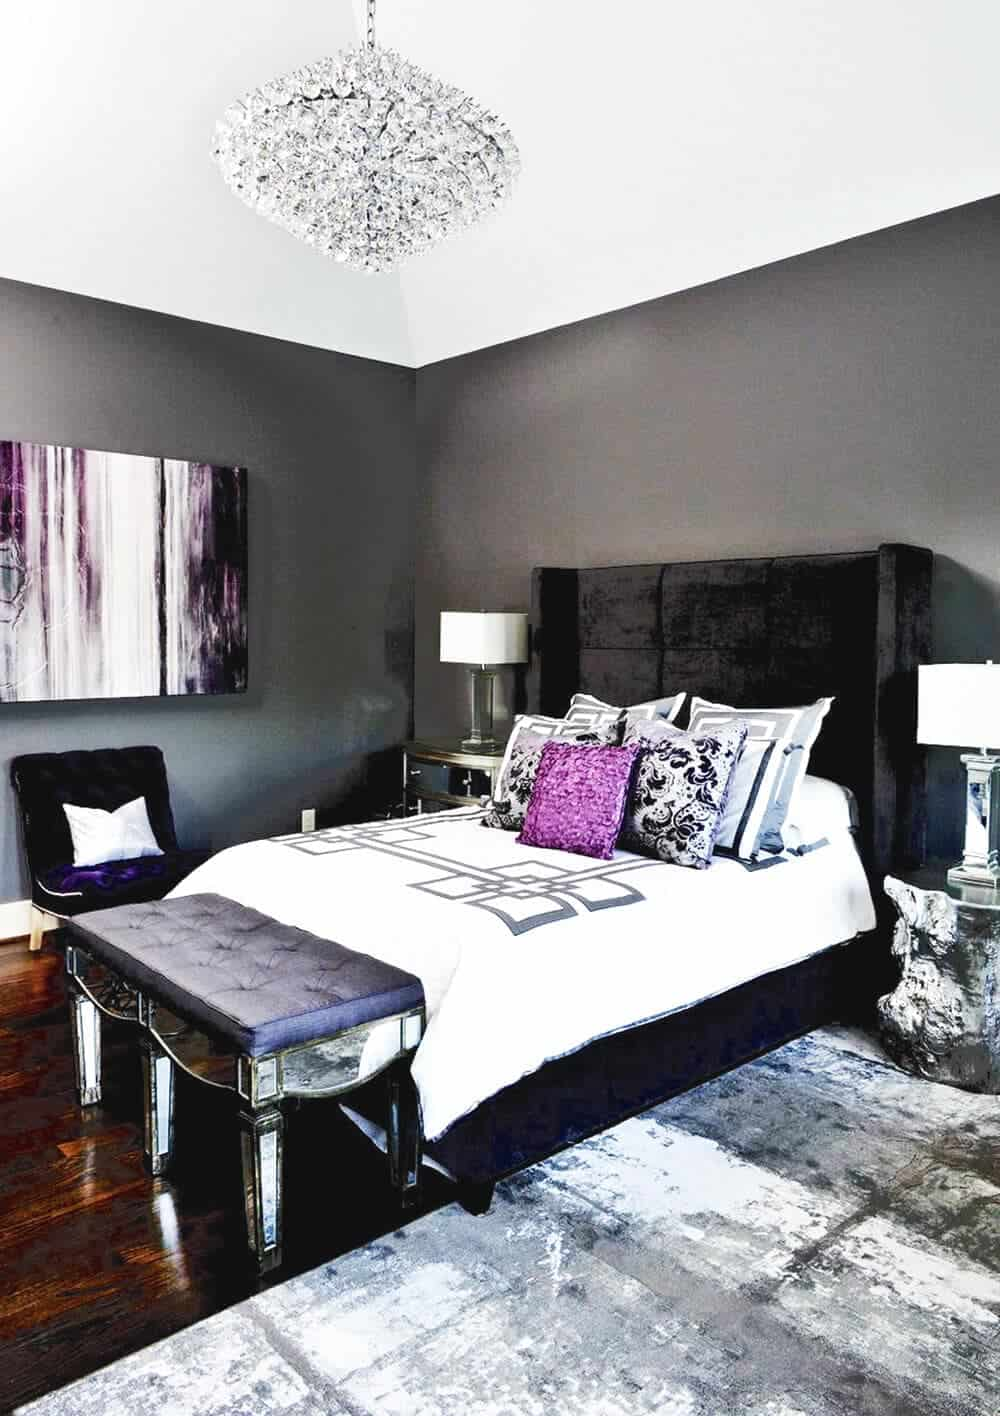 The black velvet frame and headboard of the bed as well as the dark walls are contrasted by the sleek and shiny silver bedside tables, lamps and the cushioned bench at the foot of the bed that matches with the crystal pendant light.